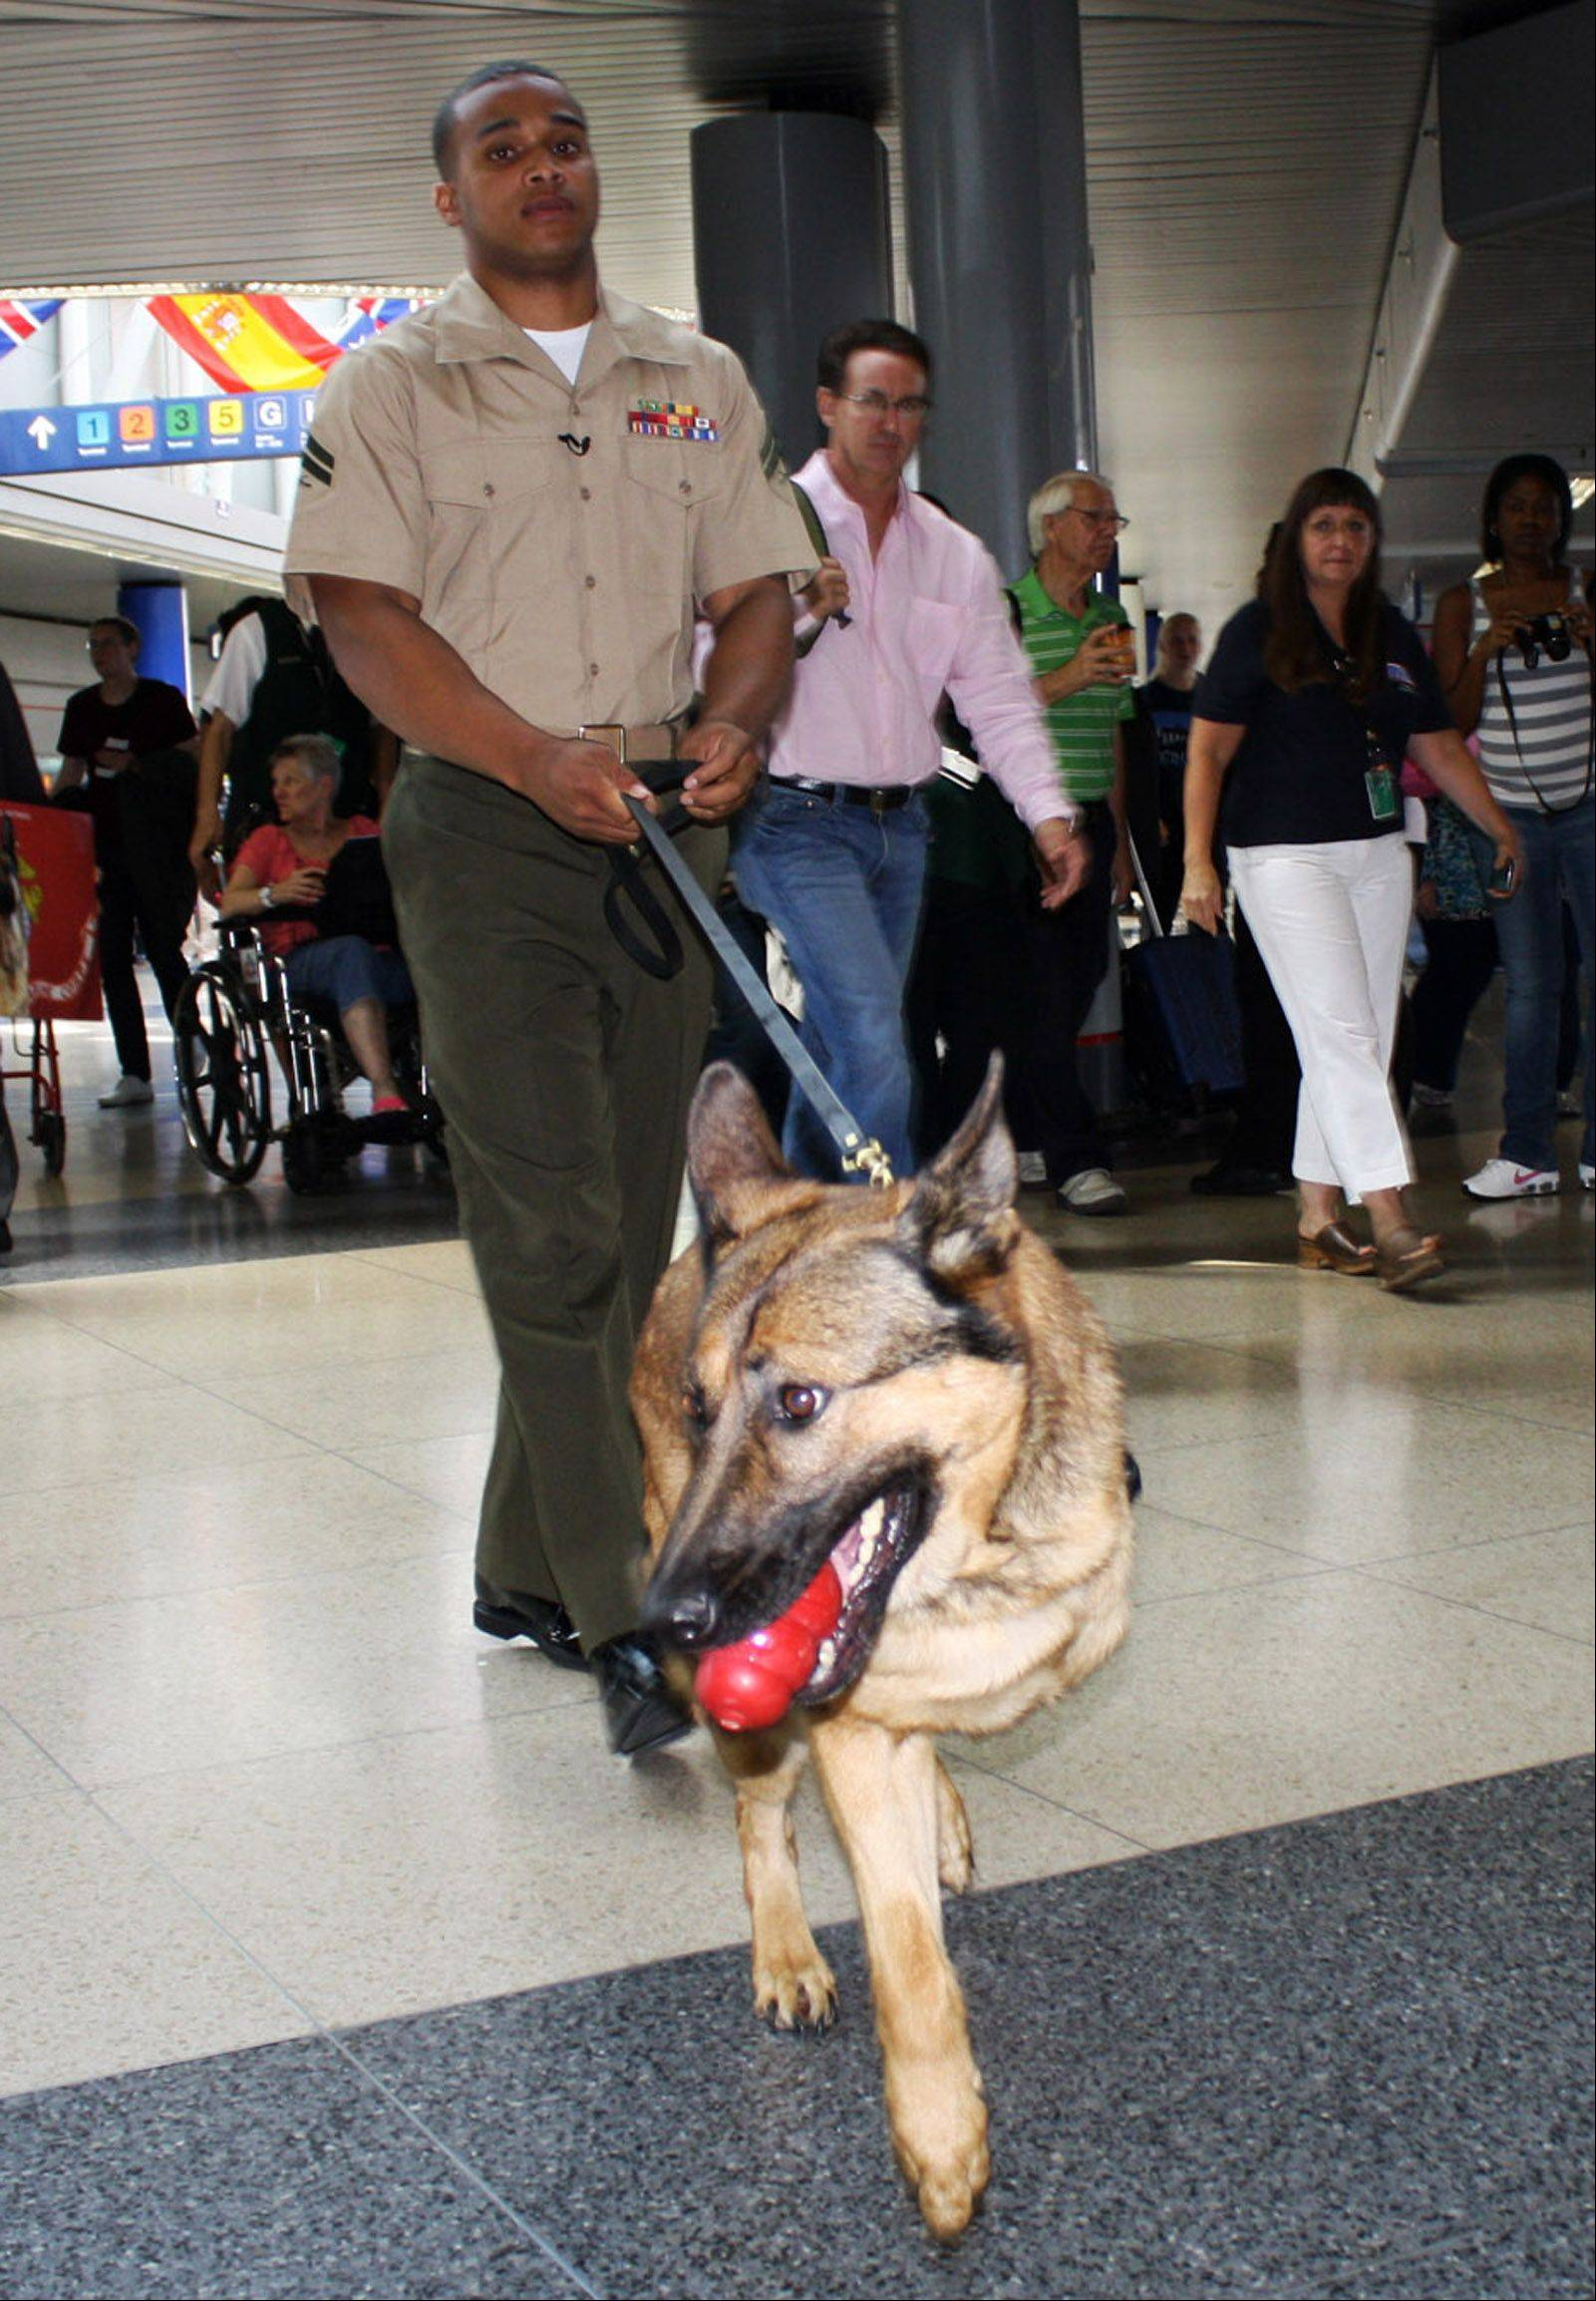 Marine Cpl. Juan Rodriguez walks Lucca through the American Airlines concourse at O'Hare International Airport on Thursday. The injured military dog is on her way to retirement in Finland.